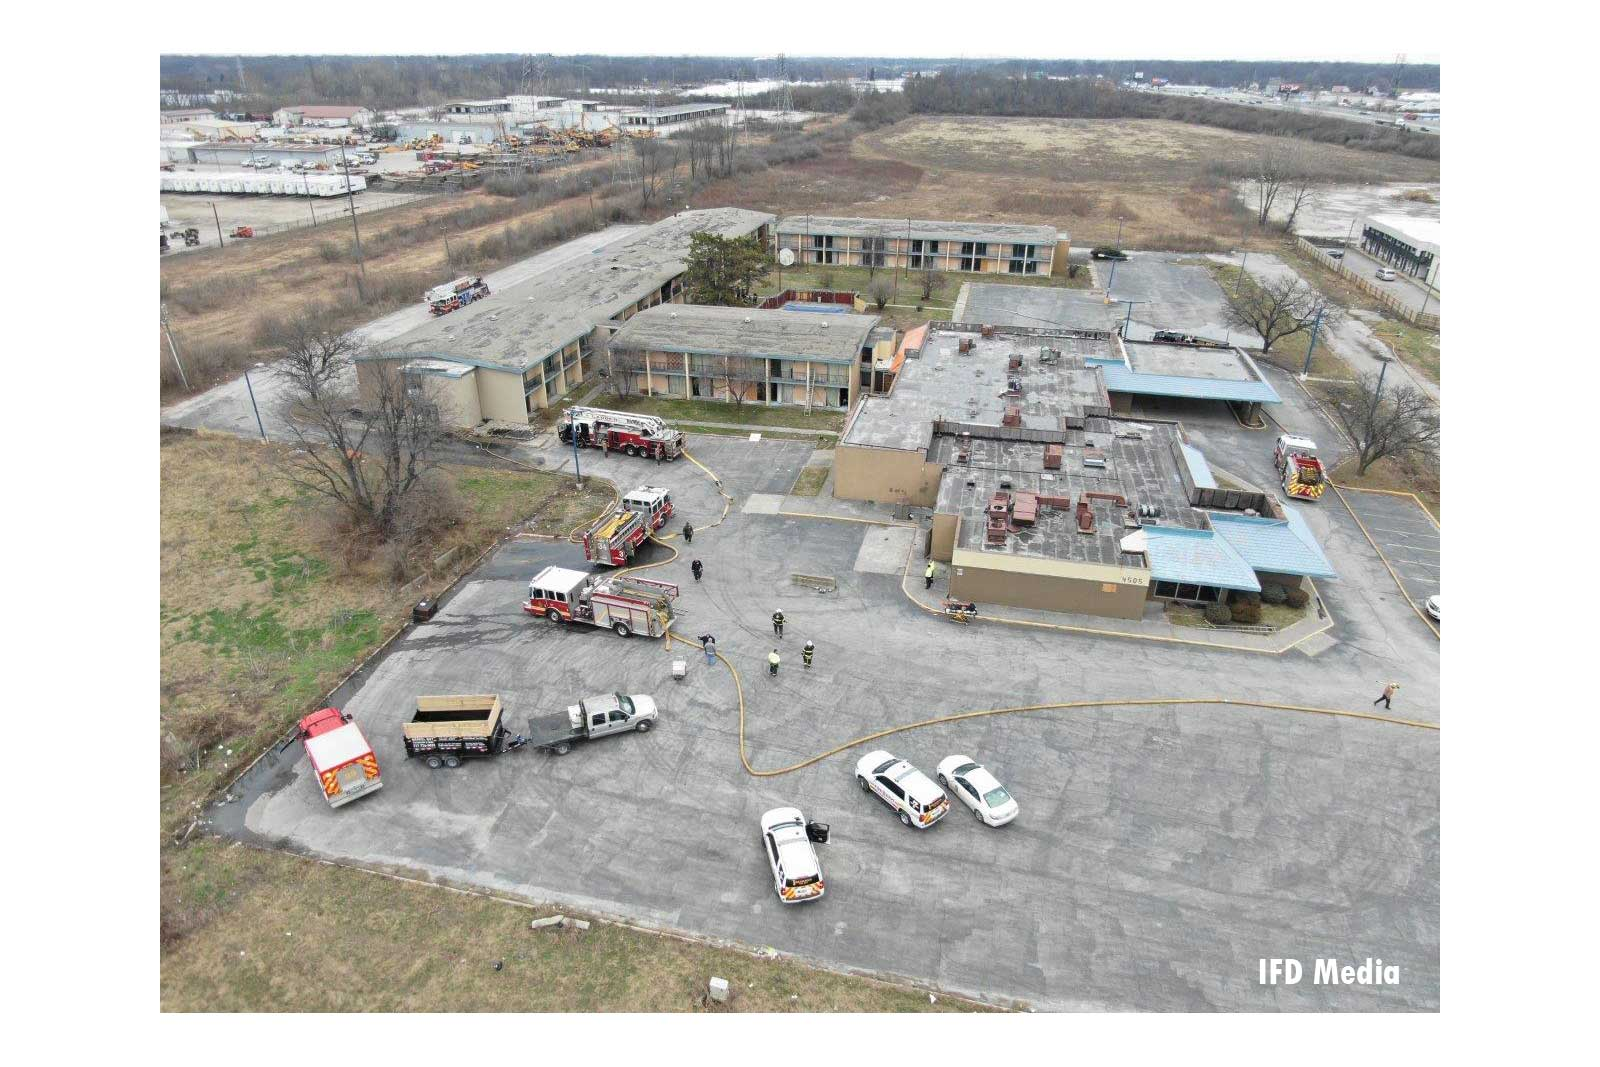 A birds-eye-view of the fire scene with apparatus and complex layout